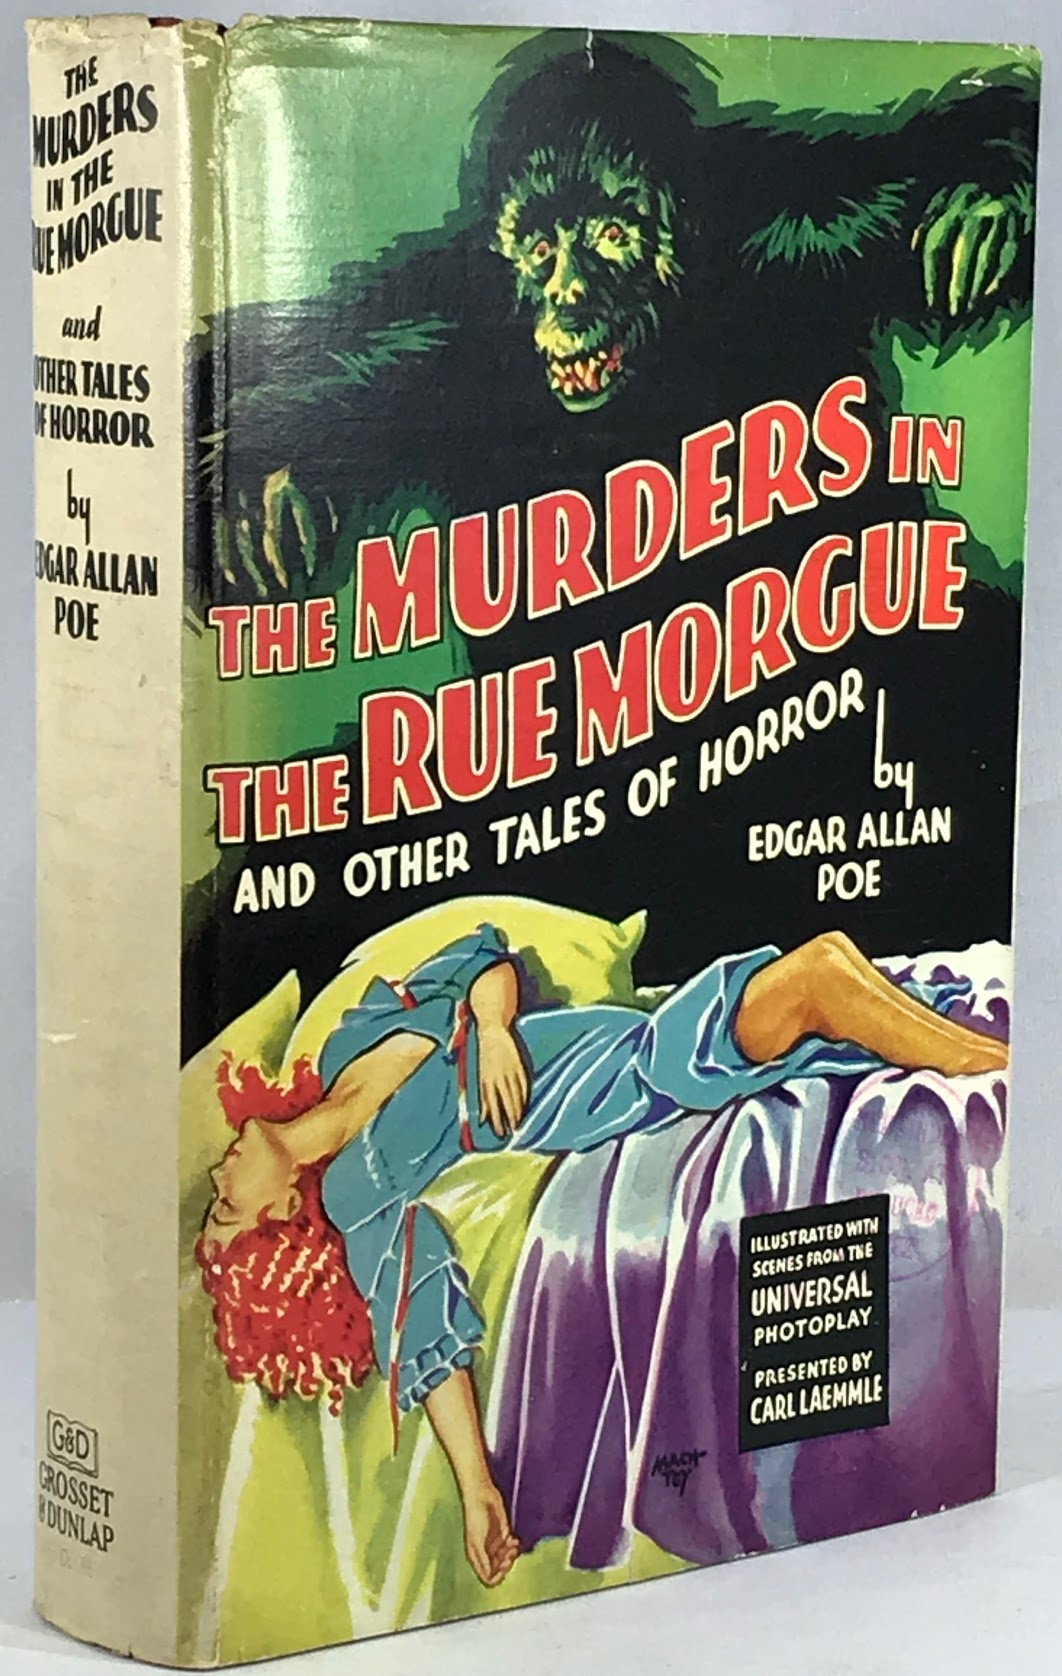 The Murders in the Rue Morque